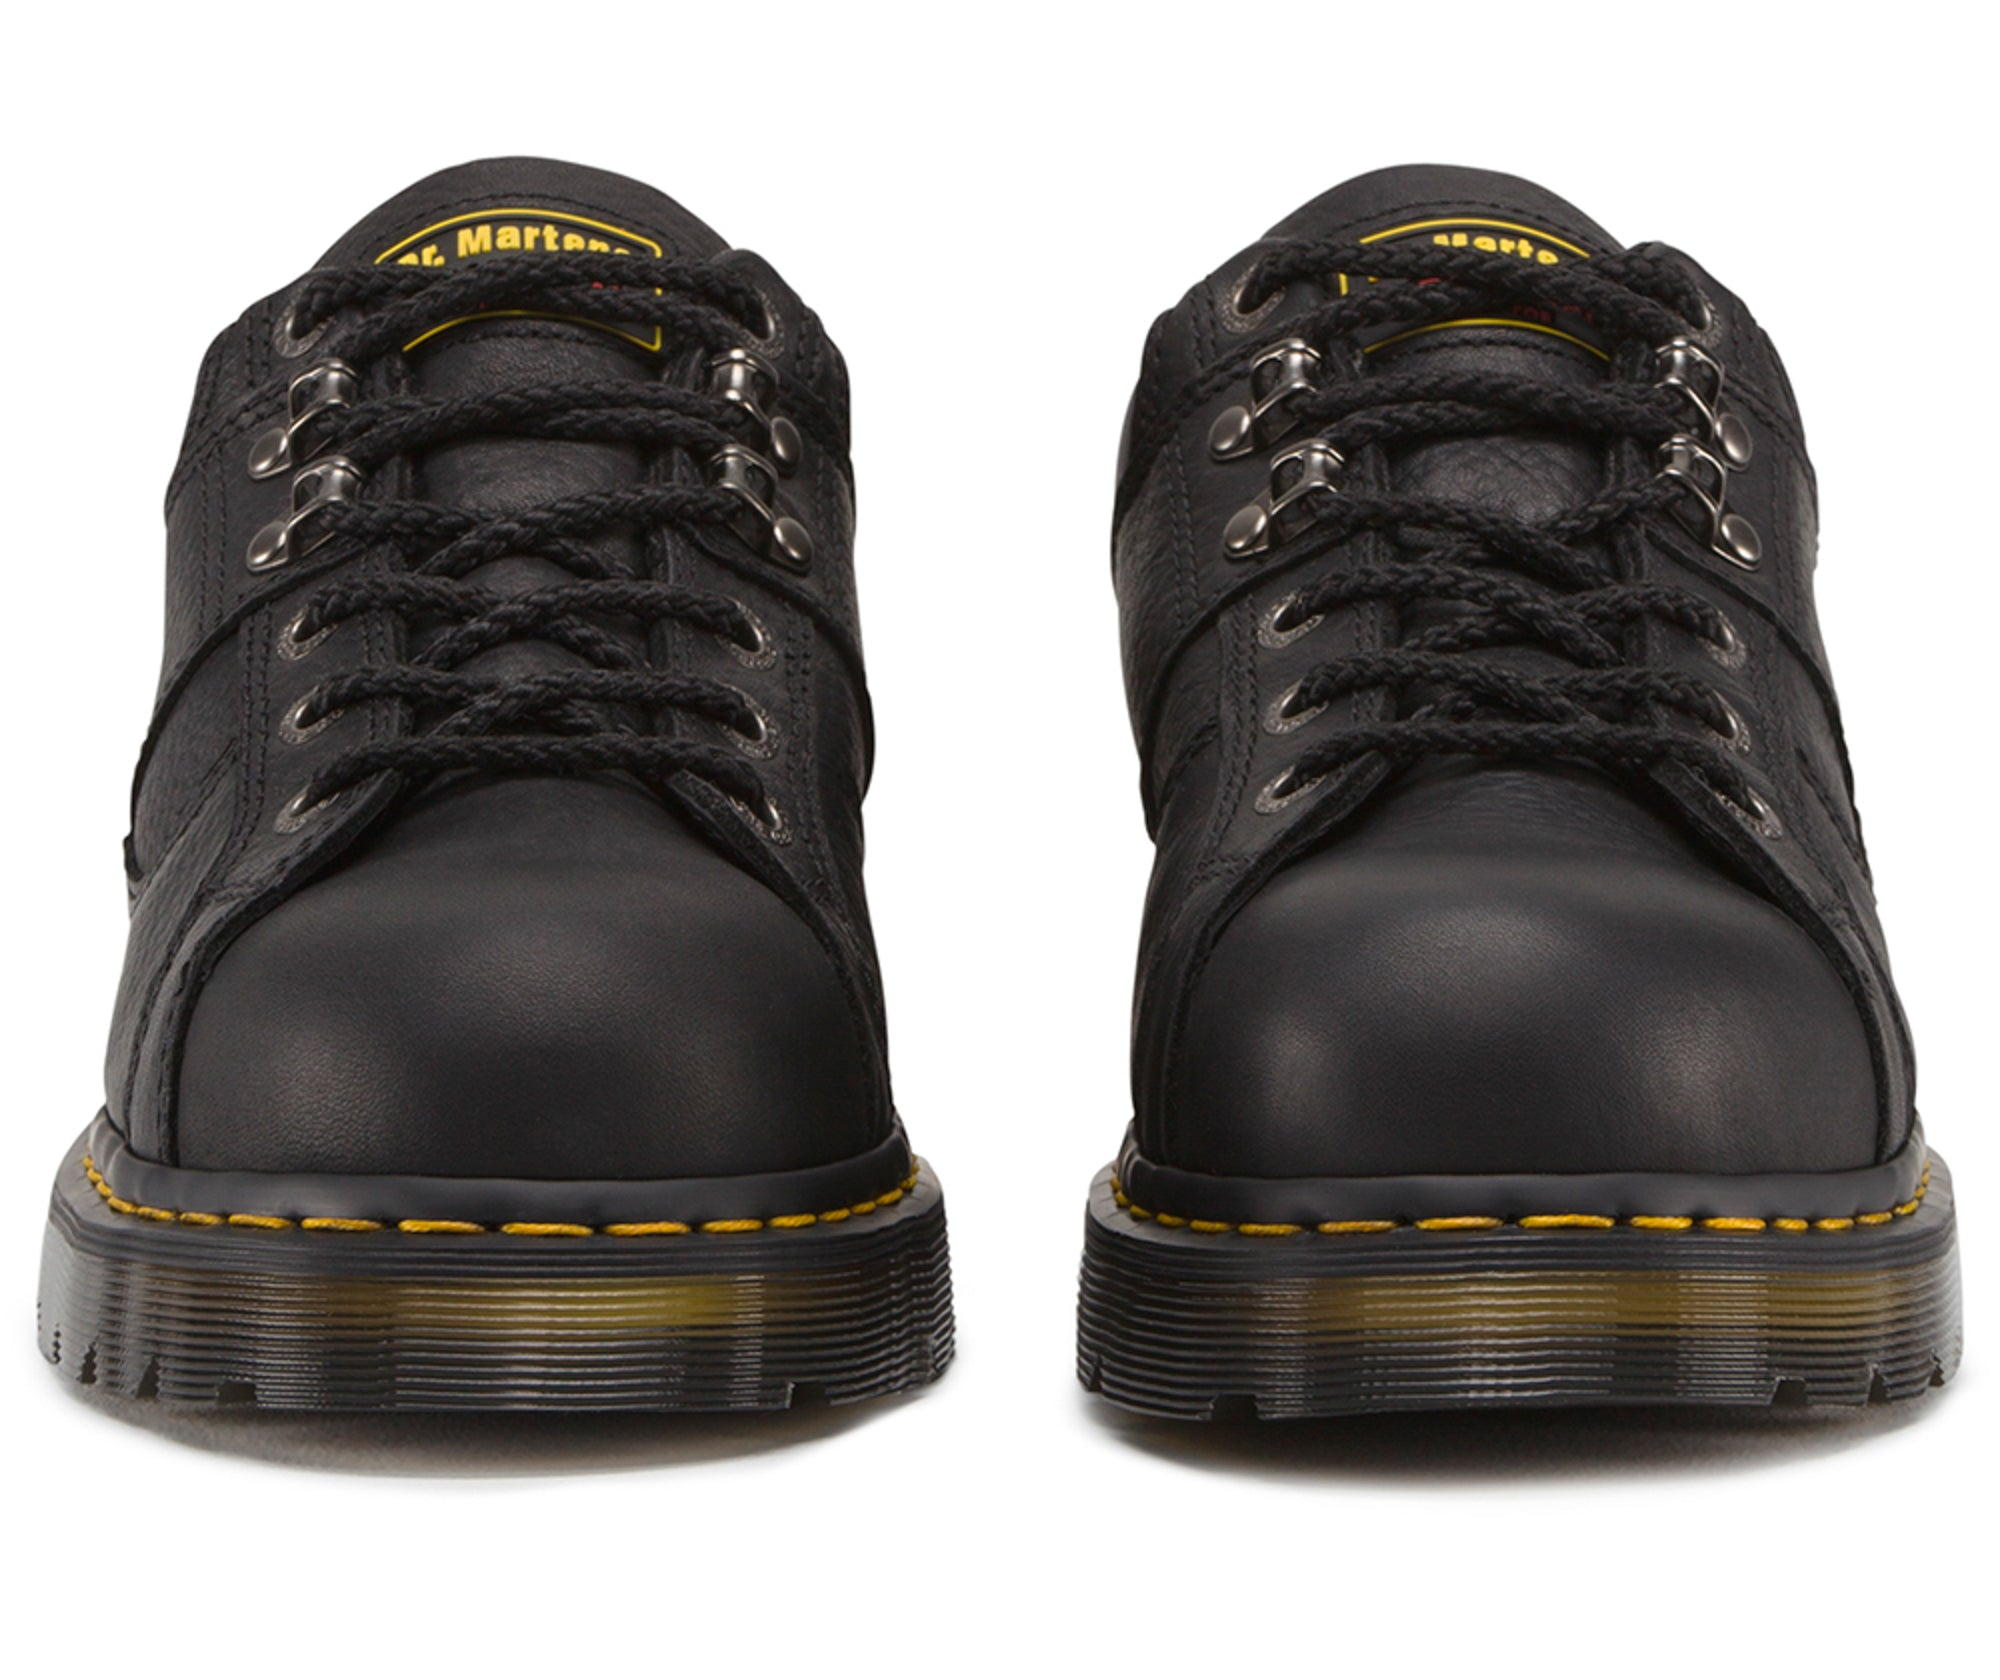 65420c9bc79 Dr Martens Black Unisex Gunby ST Grizzly Leather Work Shoes ...